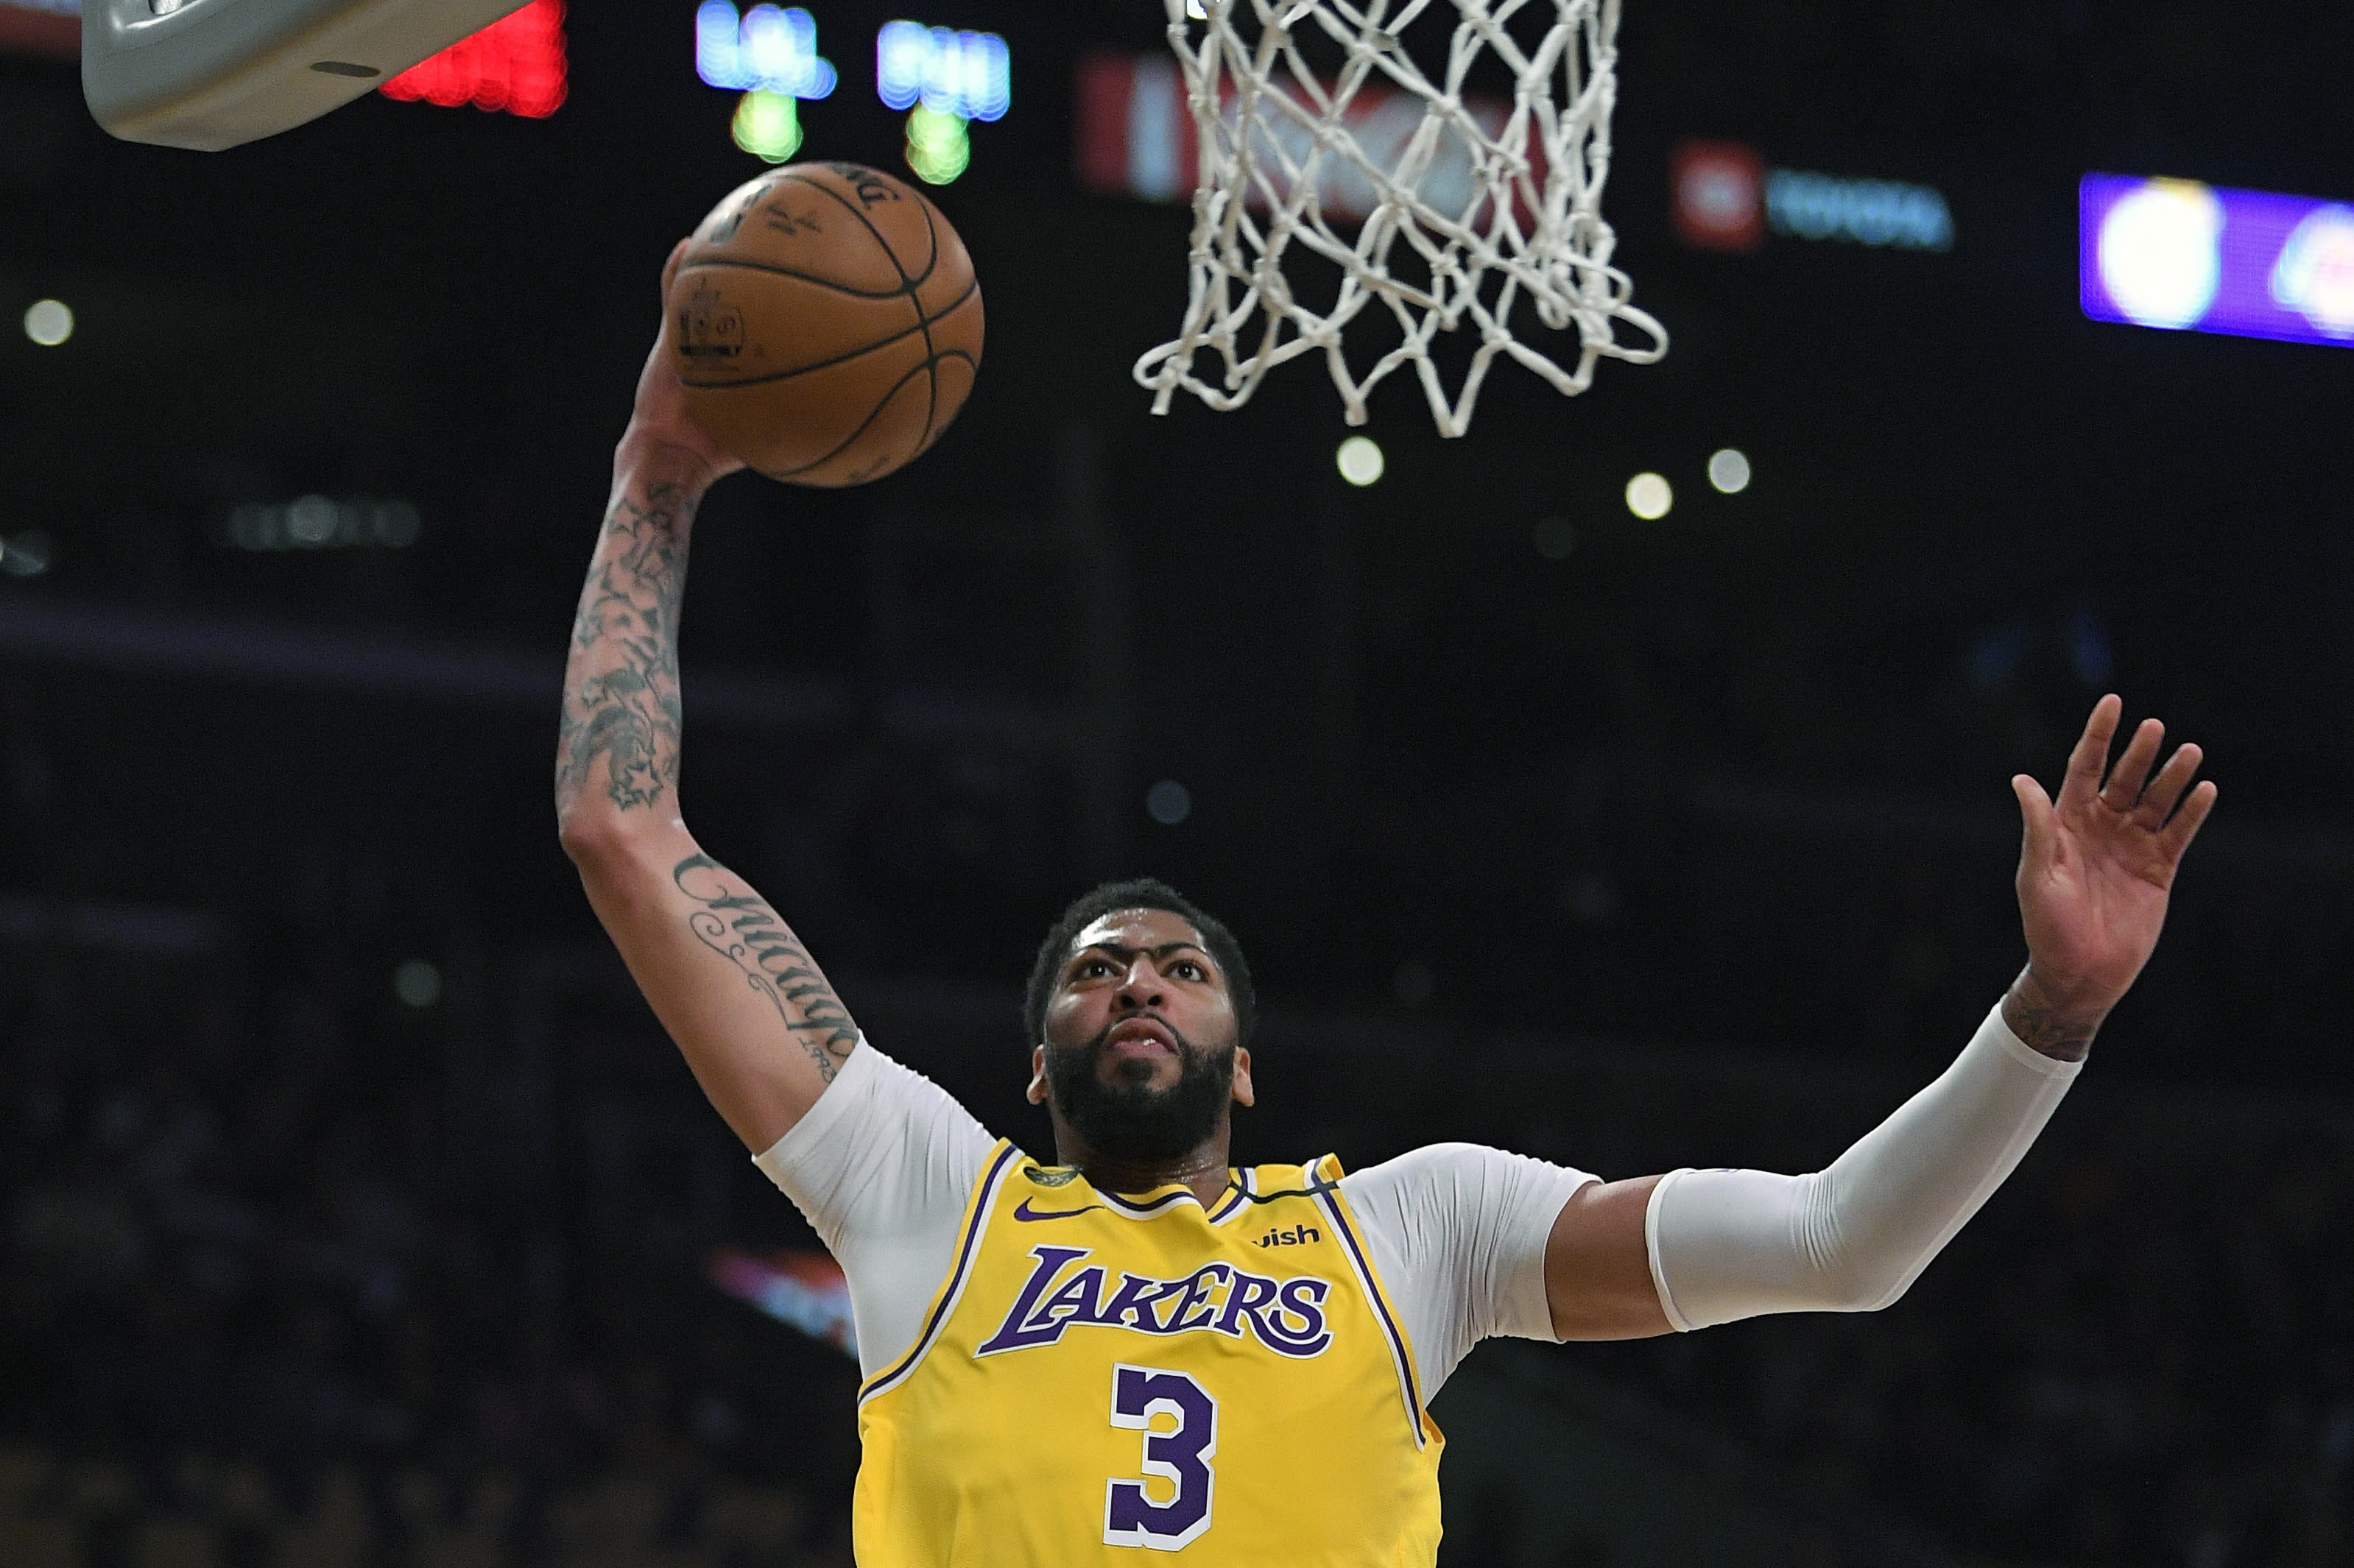 FILE - In this Tuesday, March 3, 2020, file photo, Los Angeles Lakers forward Anthony Davis shoots during the first half of an NBA basketball game against the Philadelphia 76ers in Los Angeles. Davis left his team's scrimmage against the Orlando Magic on Saturday, July 25, 2020, after being poked in the right eye and is listed as day-to-day. (AP Photo/Mark J. Terrill, File)